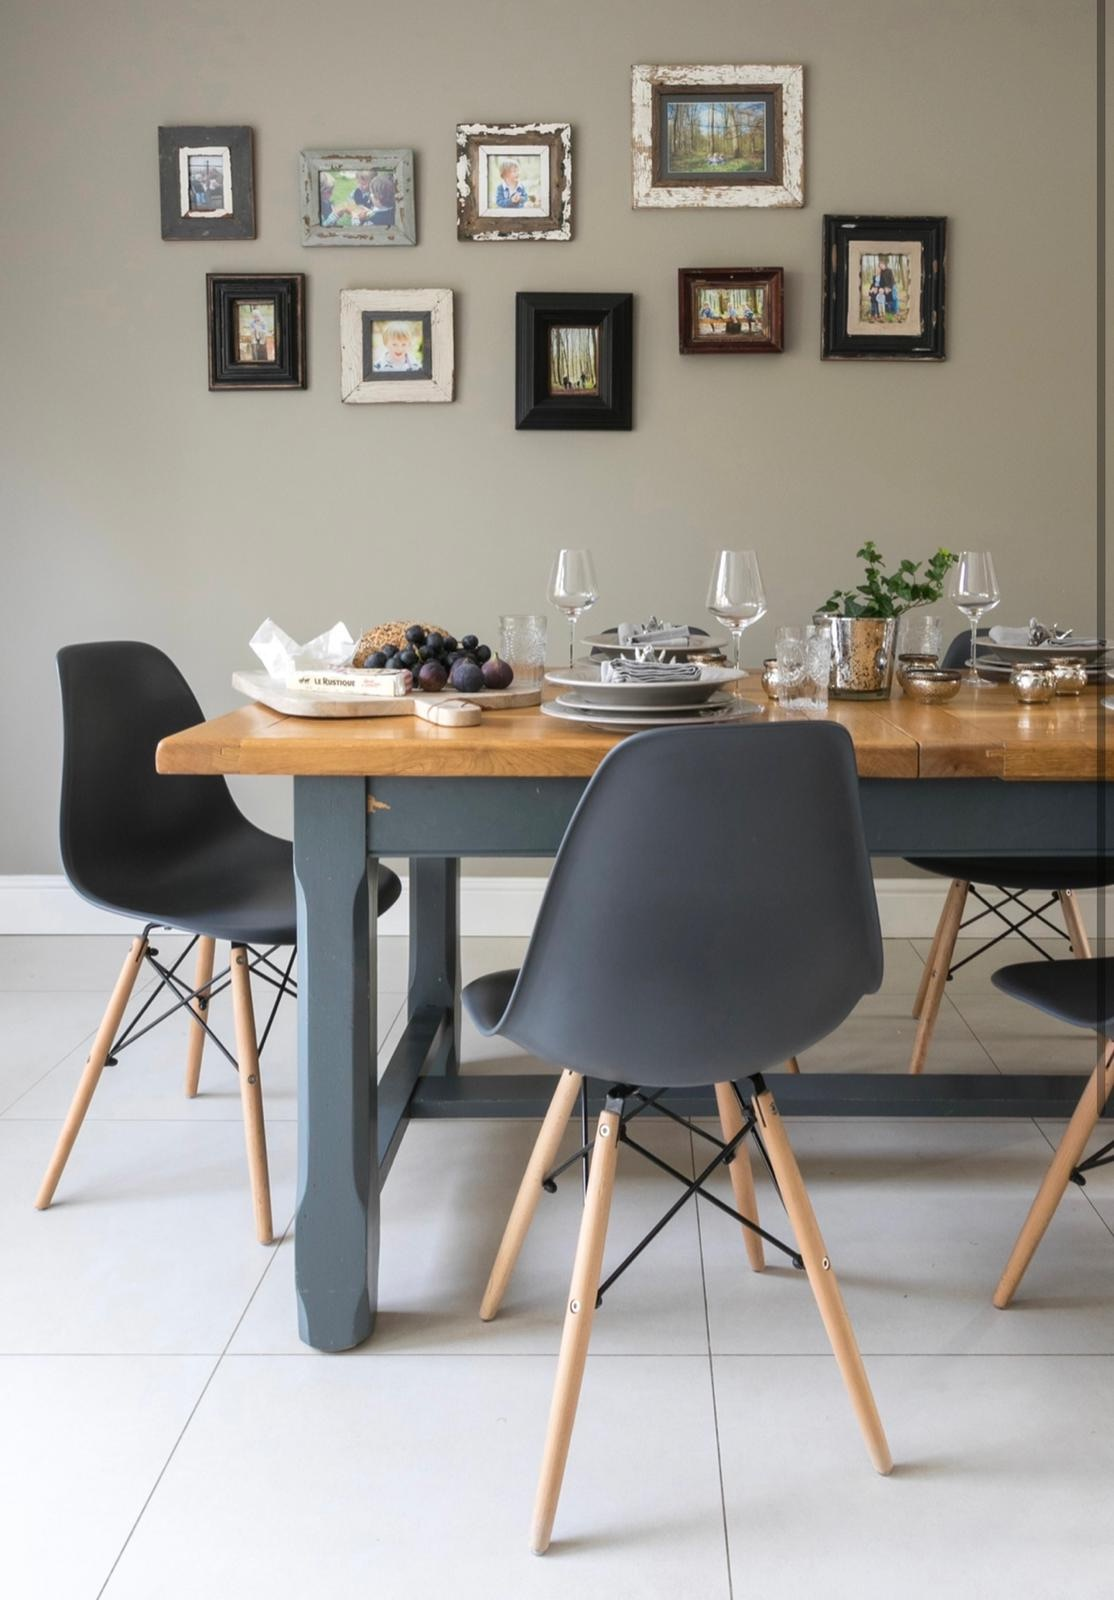 table scaping,simple interior designs,dining room design,gallery wall,